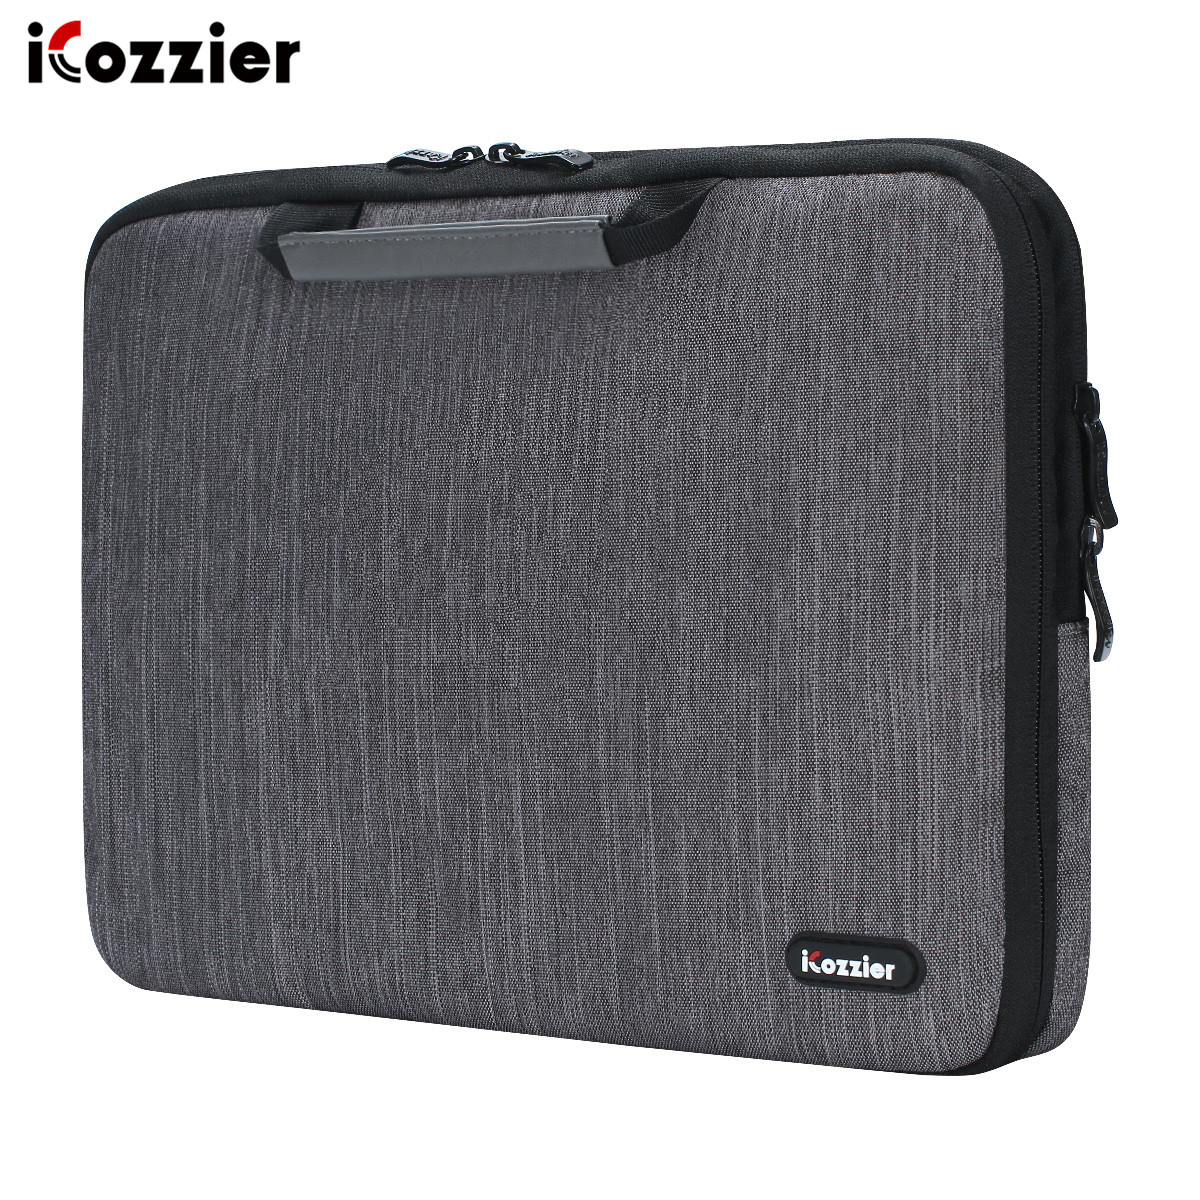 c73e65a9afb9 US $15.99 |iCozzier 11.6/13./15.6/17.3 inch handle electronic accessories  strap laptop sleeve case bag protective bag for 15.6 notebook-in Laptop  Bags ...